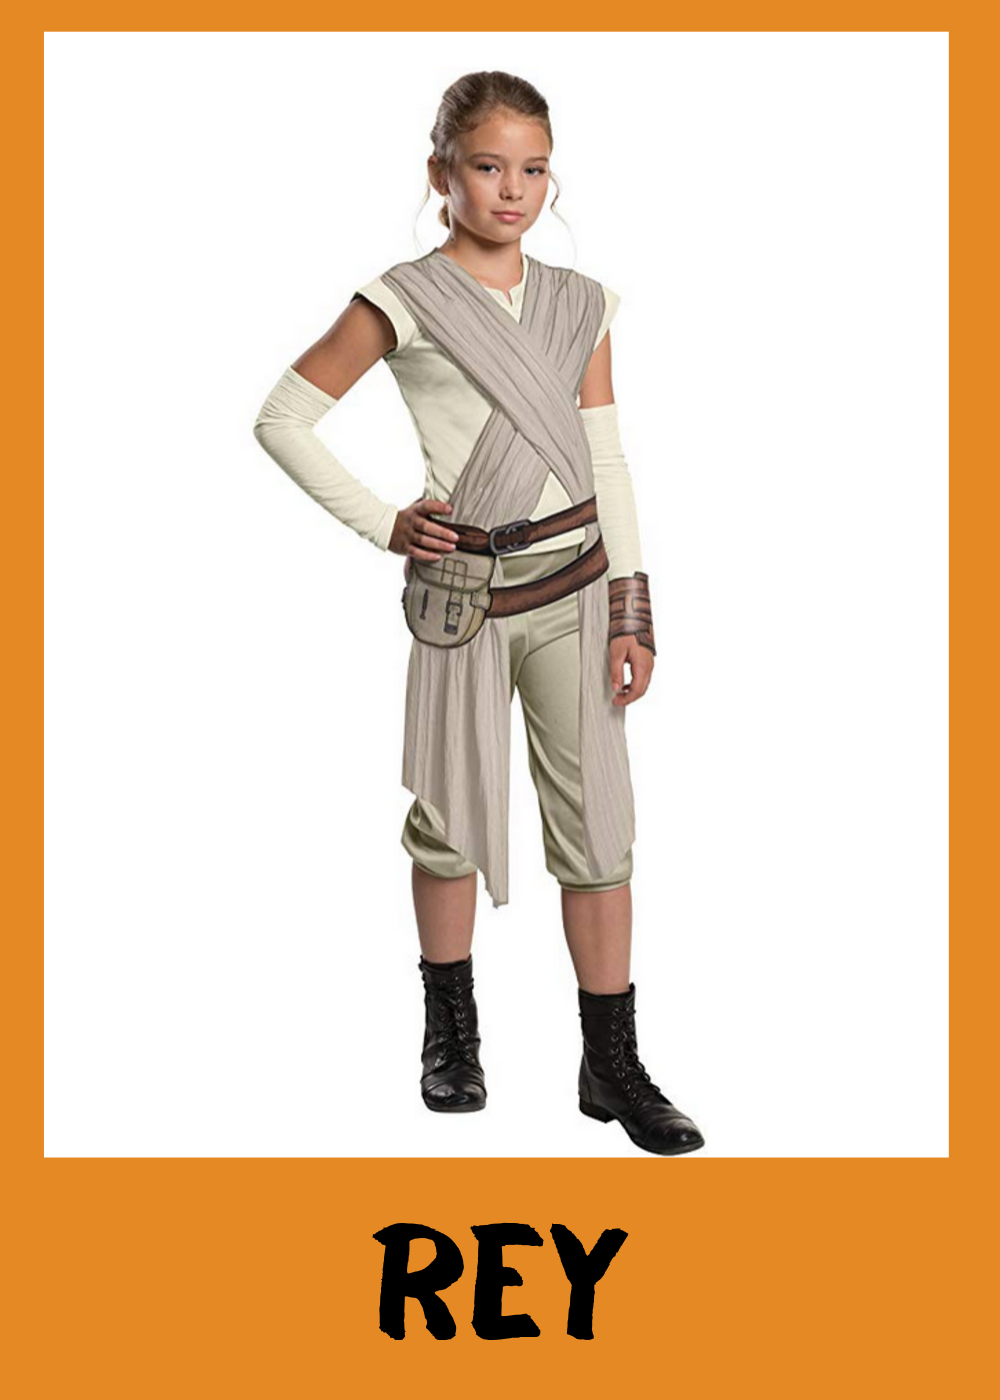 Rey from Star Wars   for under $22.98 & up.